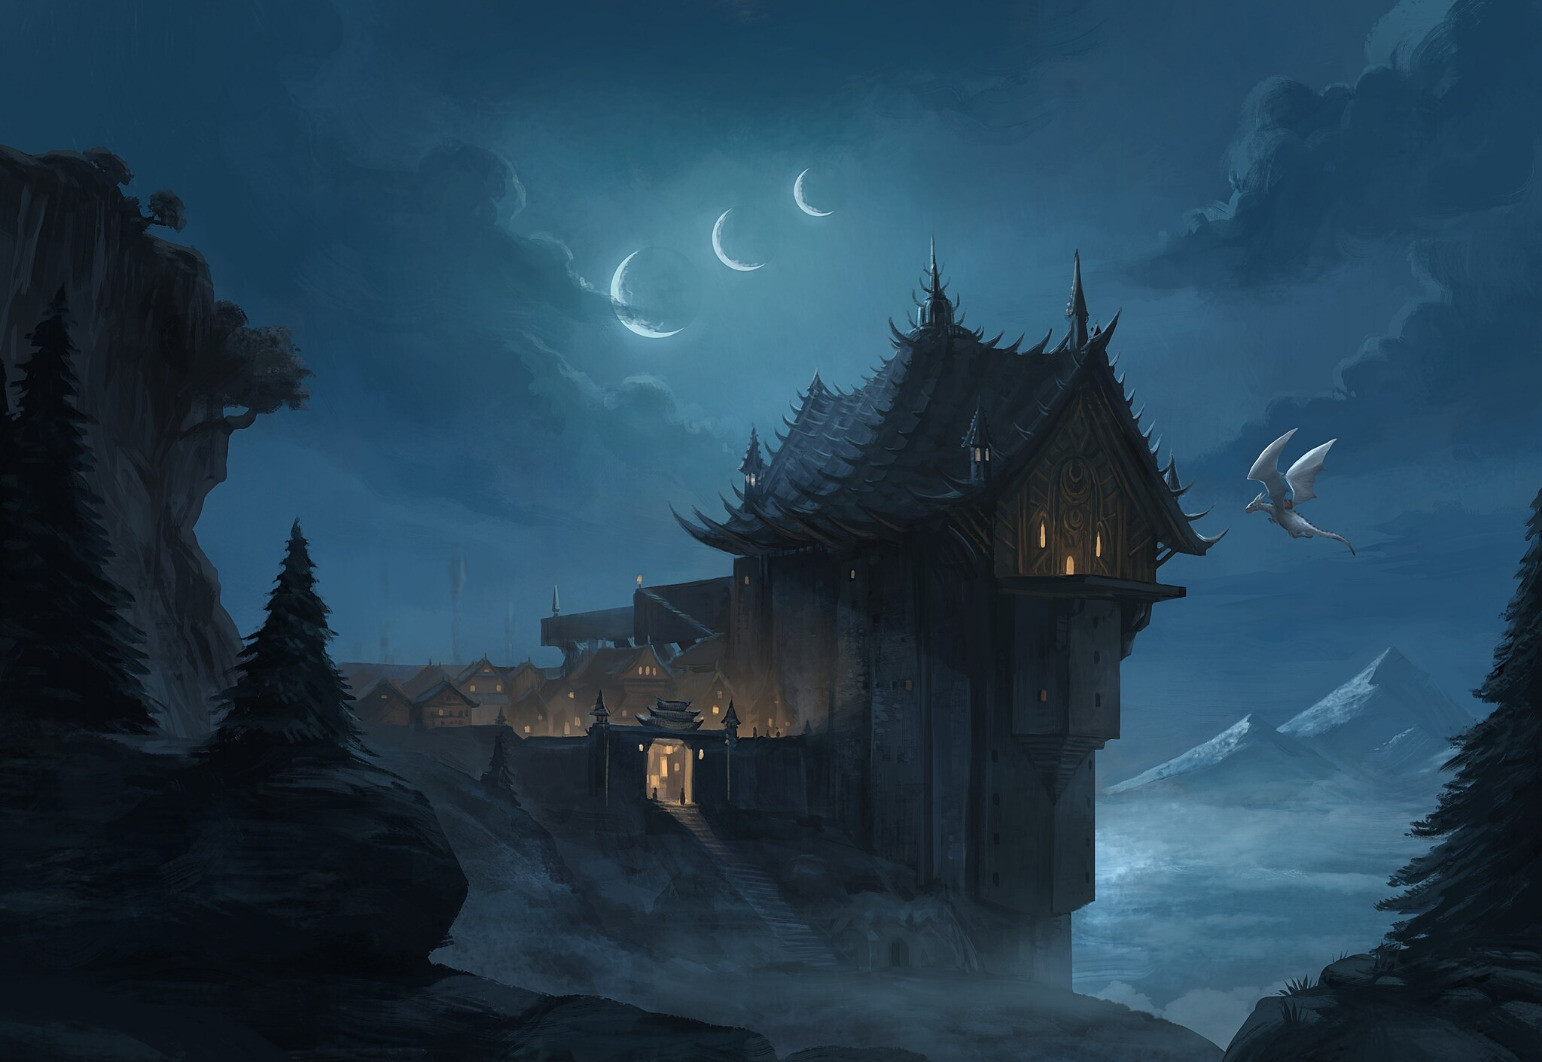 An illustration. The landscape view at night of a spiky temple and the village living at its feet. The light indicate a life at evening. A white dragon is ready to land on a platform at the rear of the temple. Three thin crescent of moon appears in the sky.